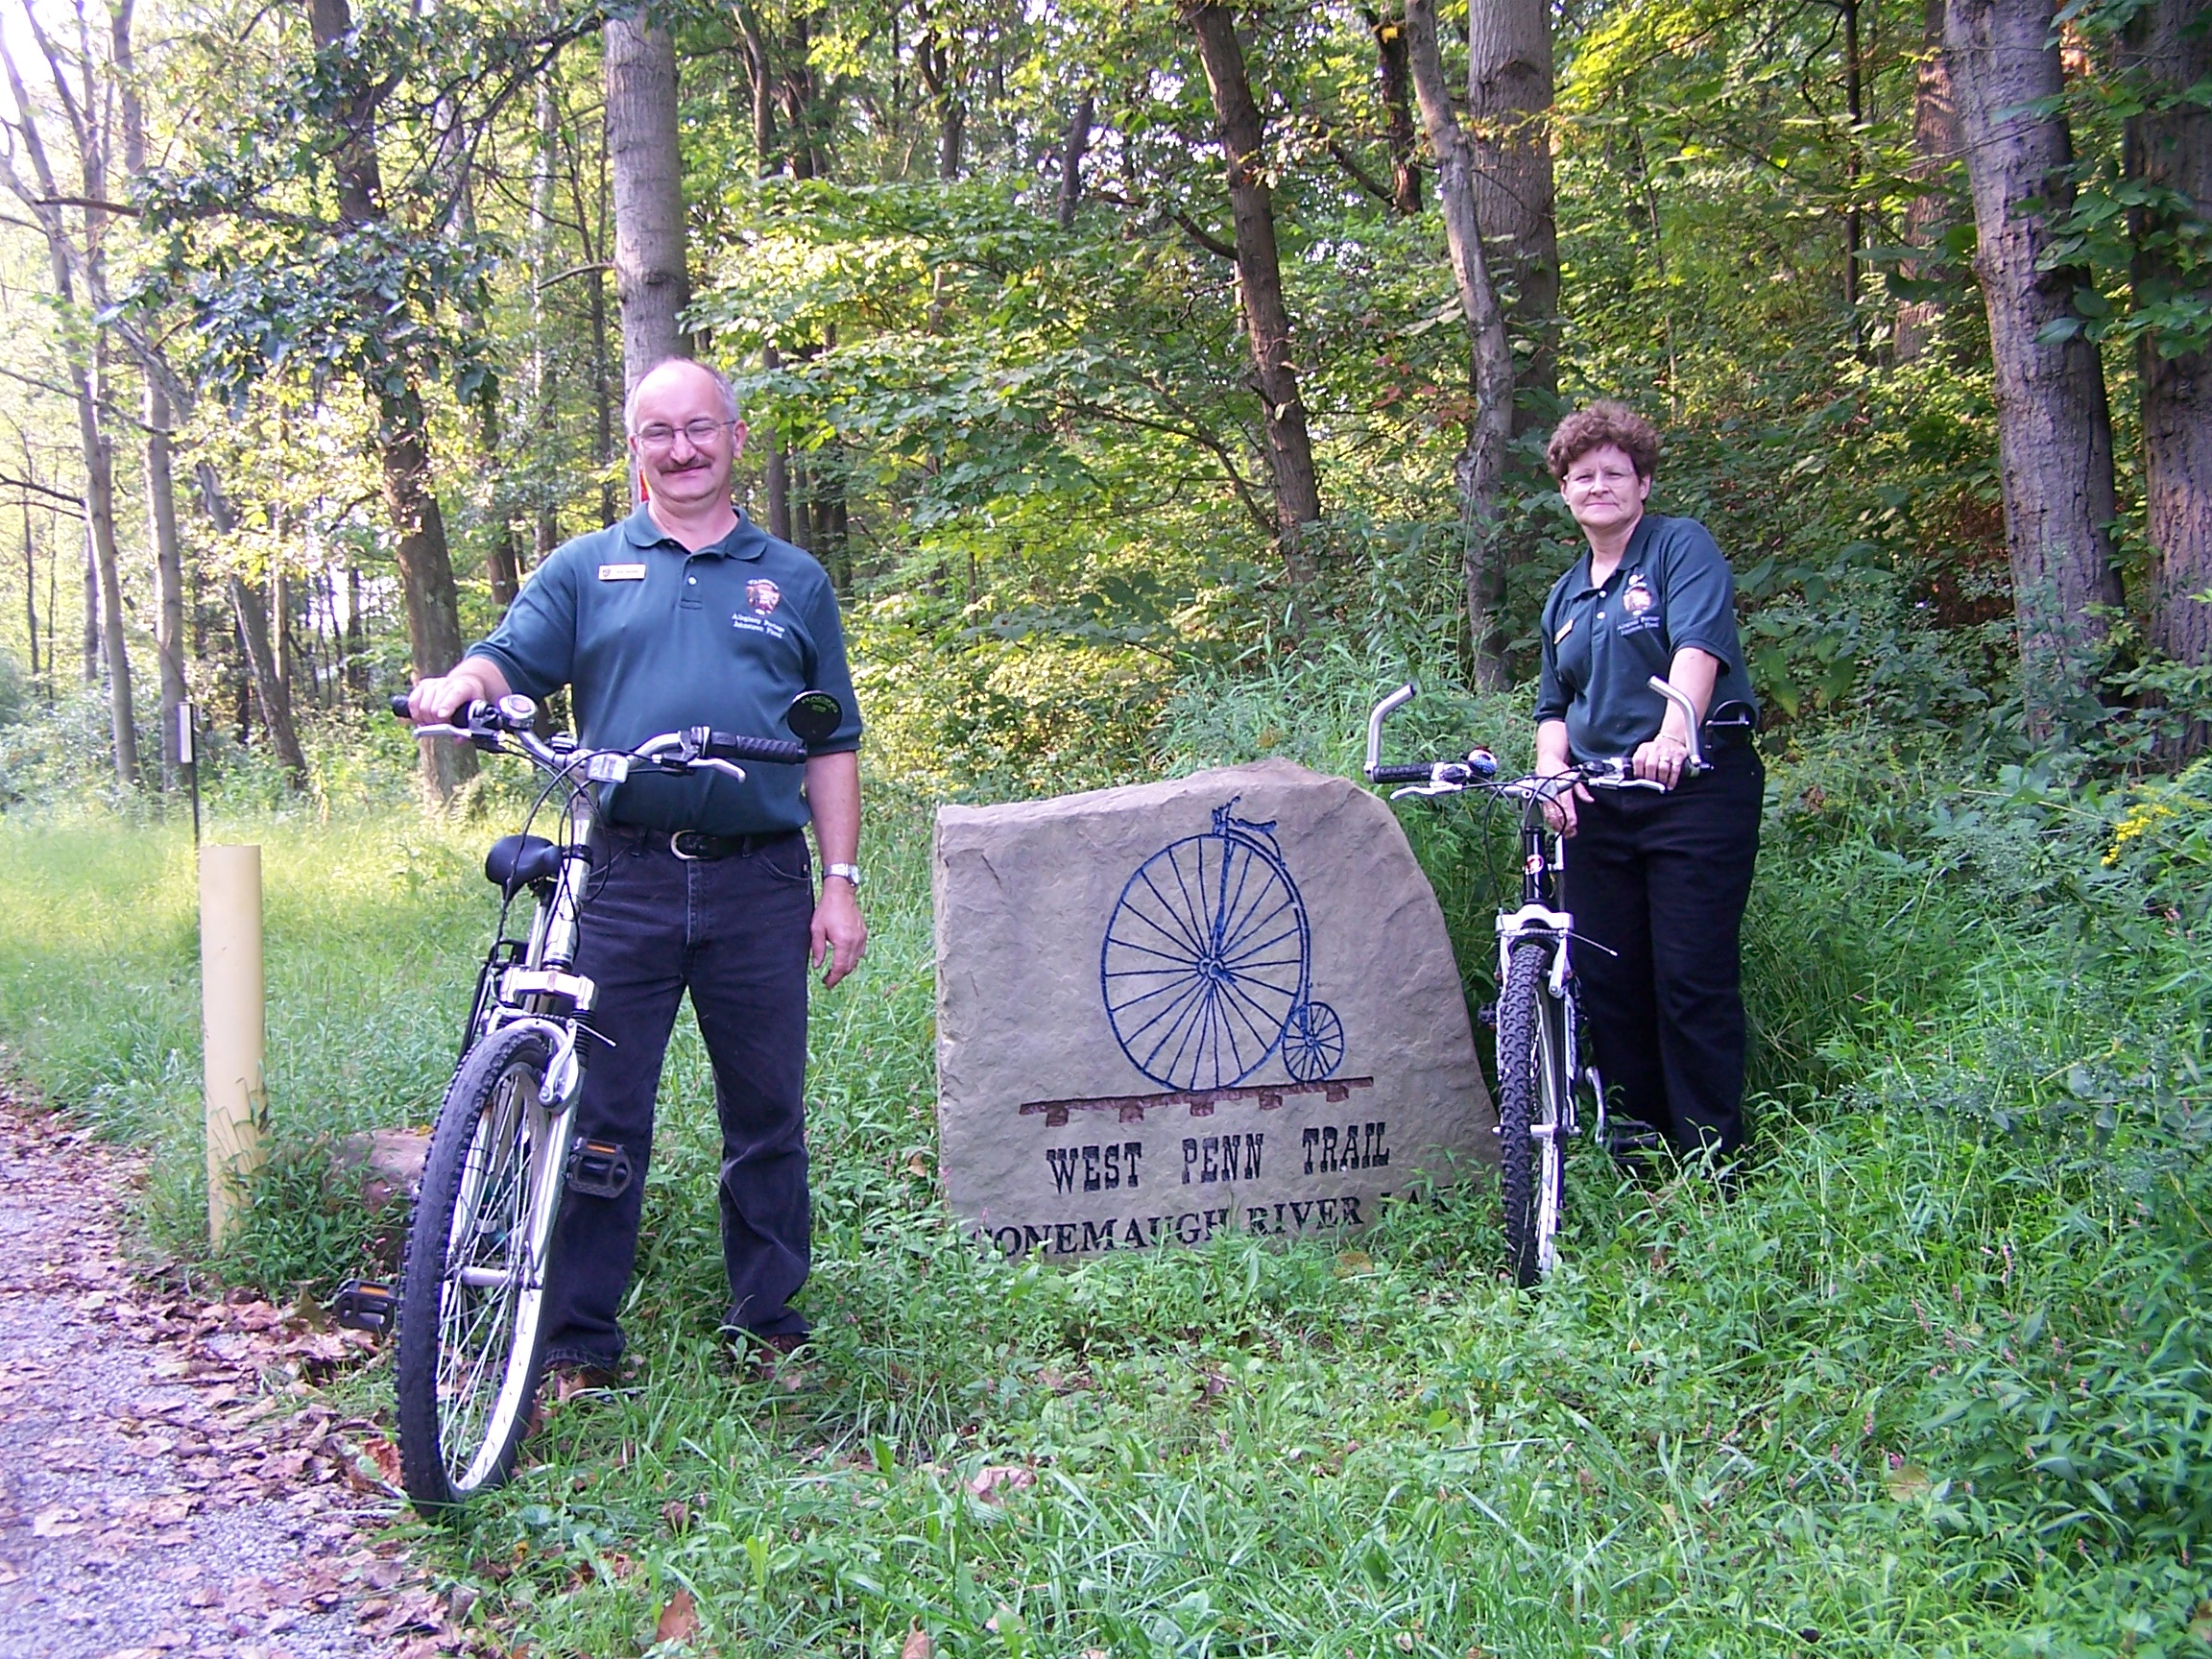 Park volunteers on bicycle tour.